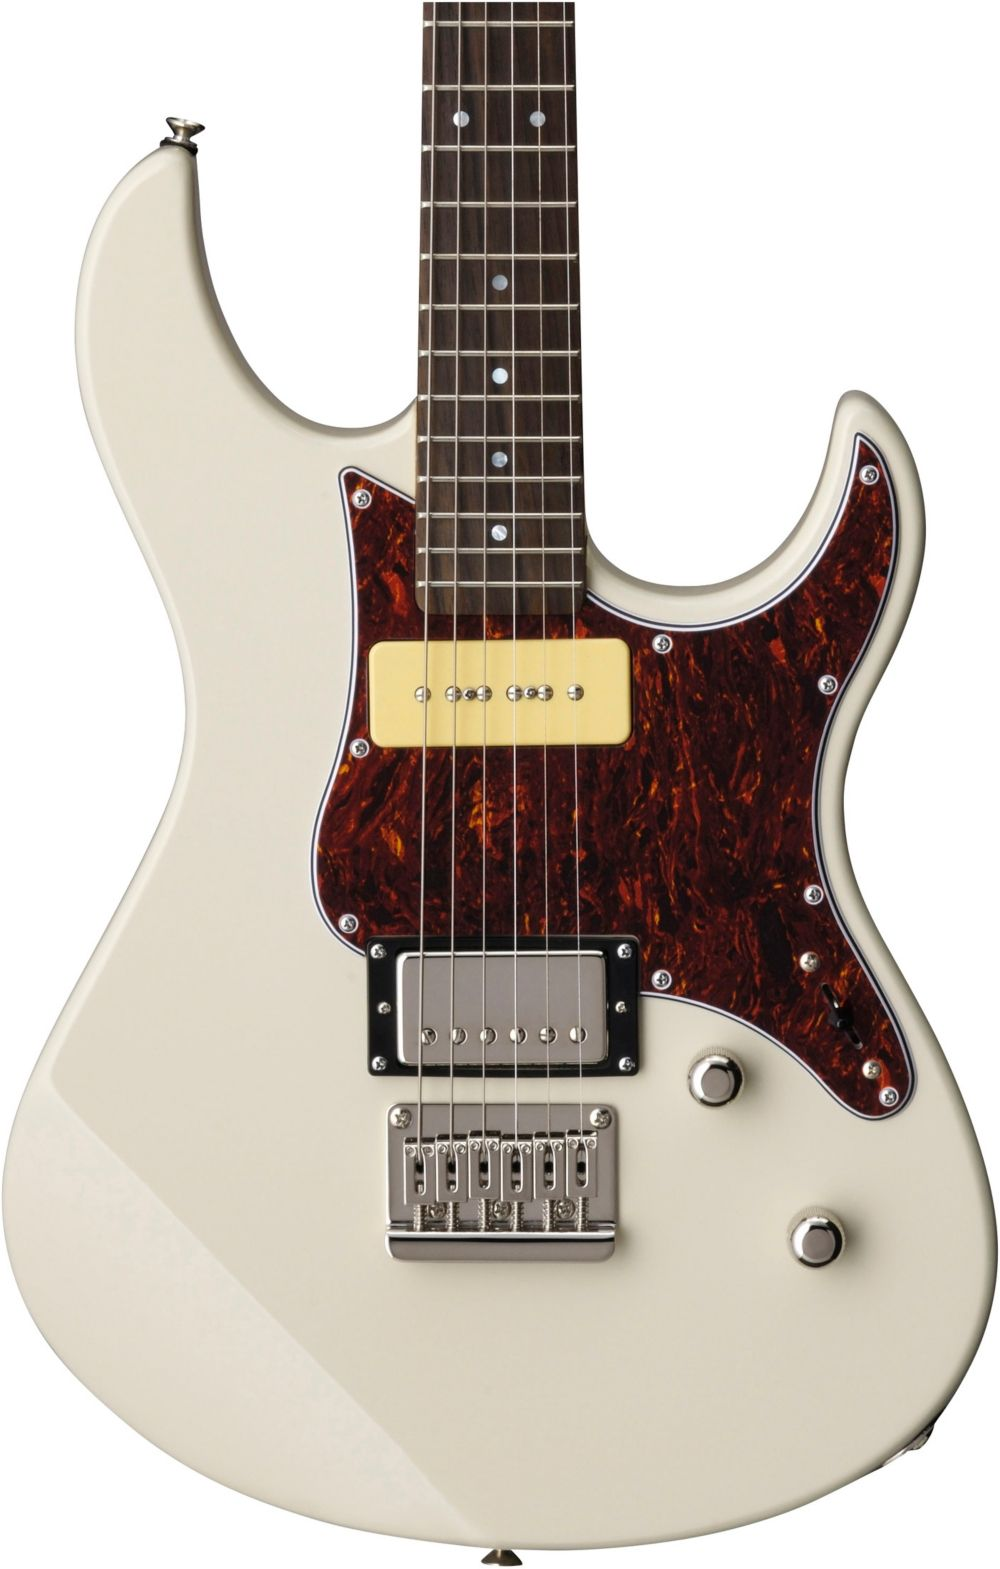 Yamaha Pacifica 311 Electric Guitar Vintage White Yamaha Guitar Guitar Electric Guitar